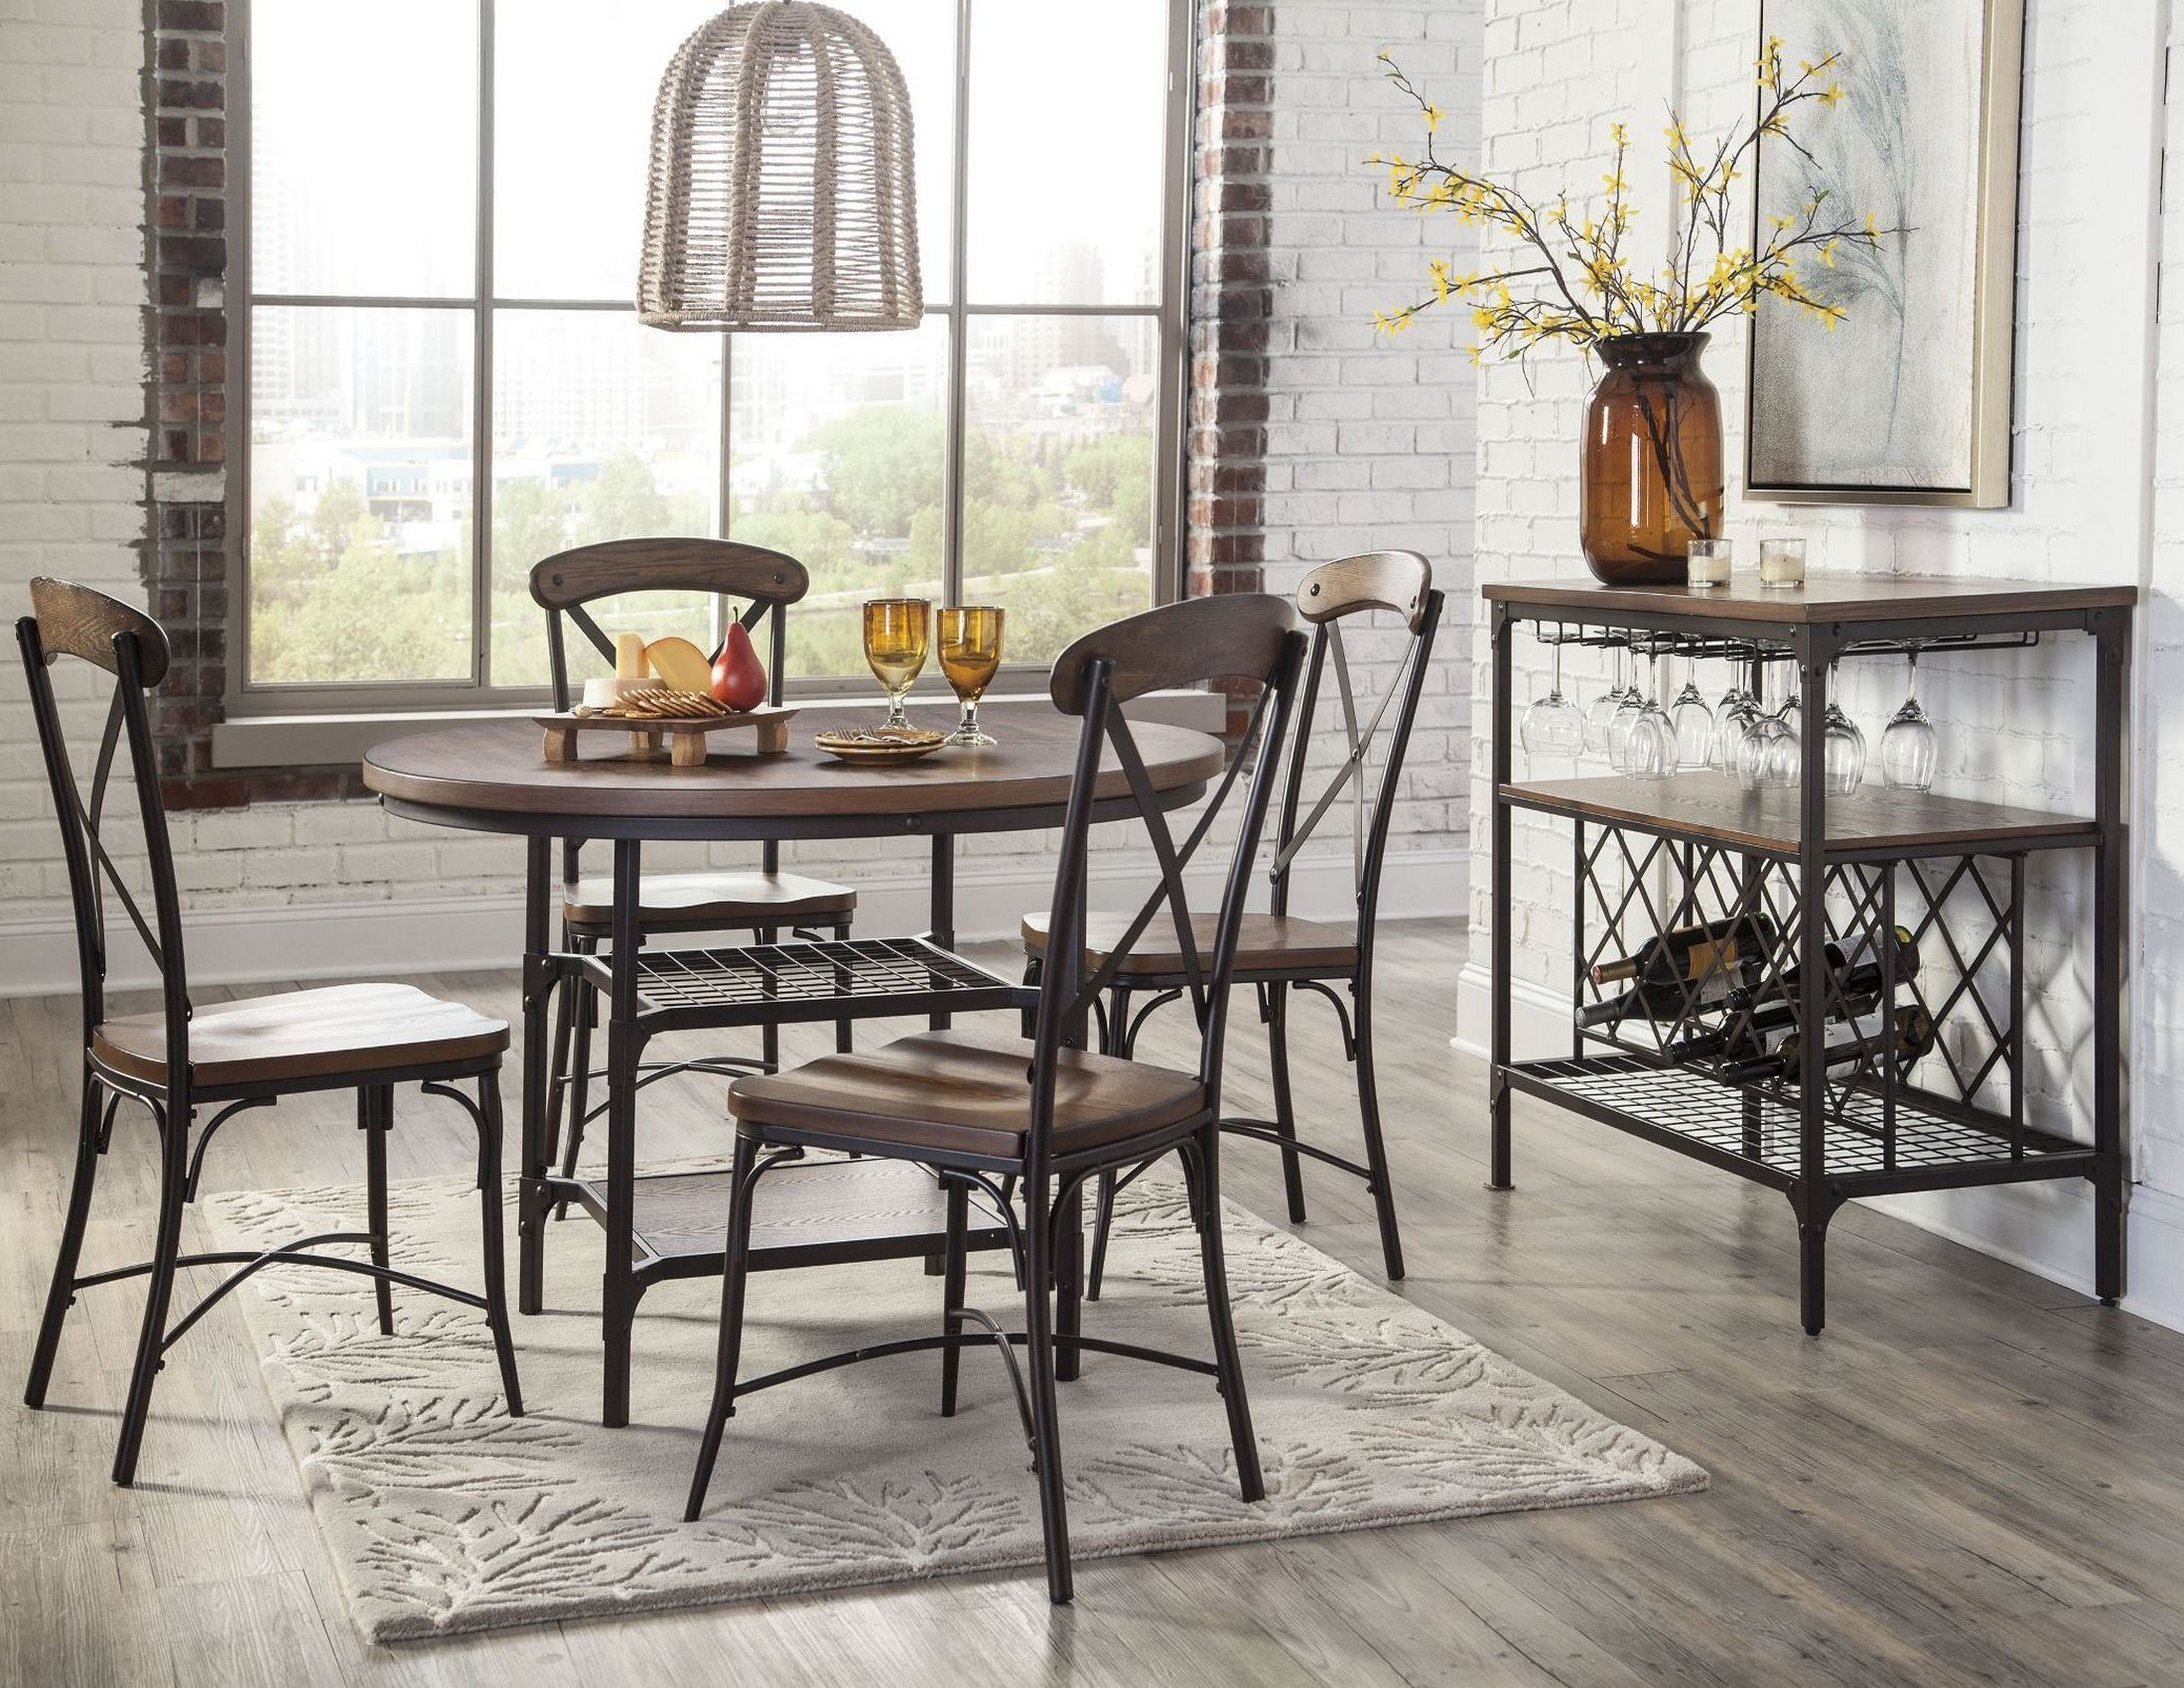 Rolena brown round dining room set from ashley d405 15 for Brown dining room set